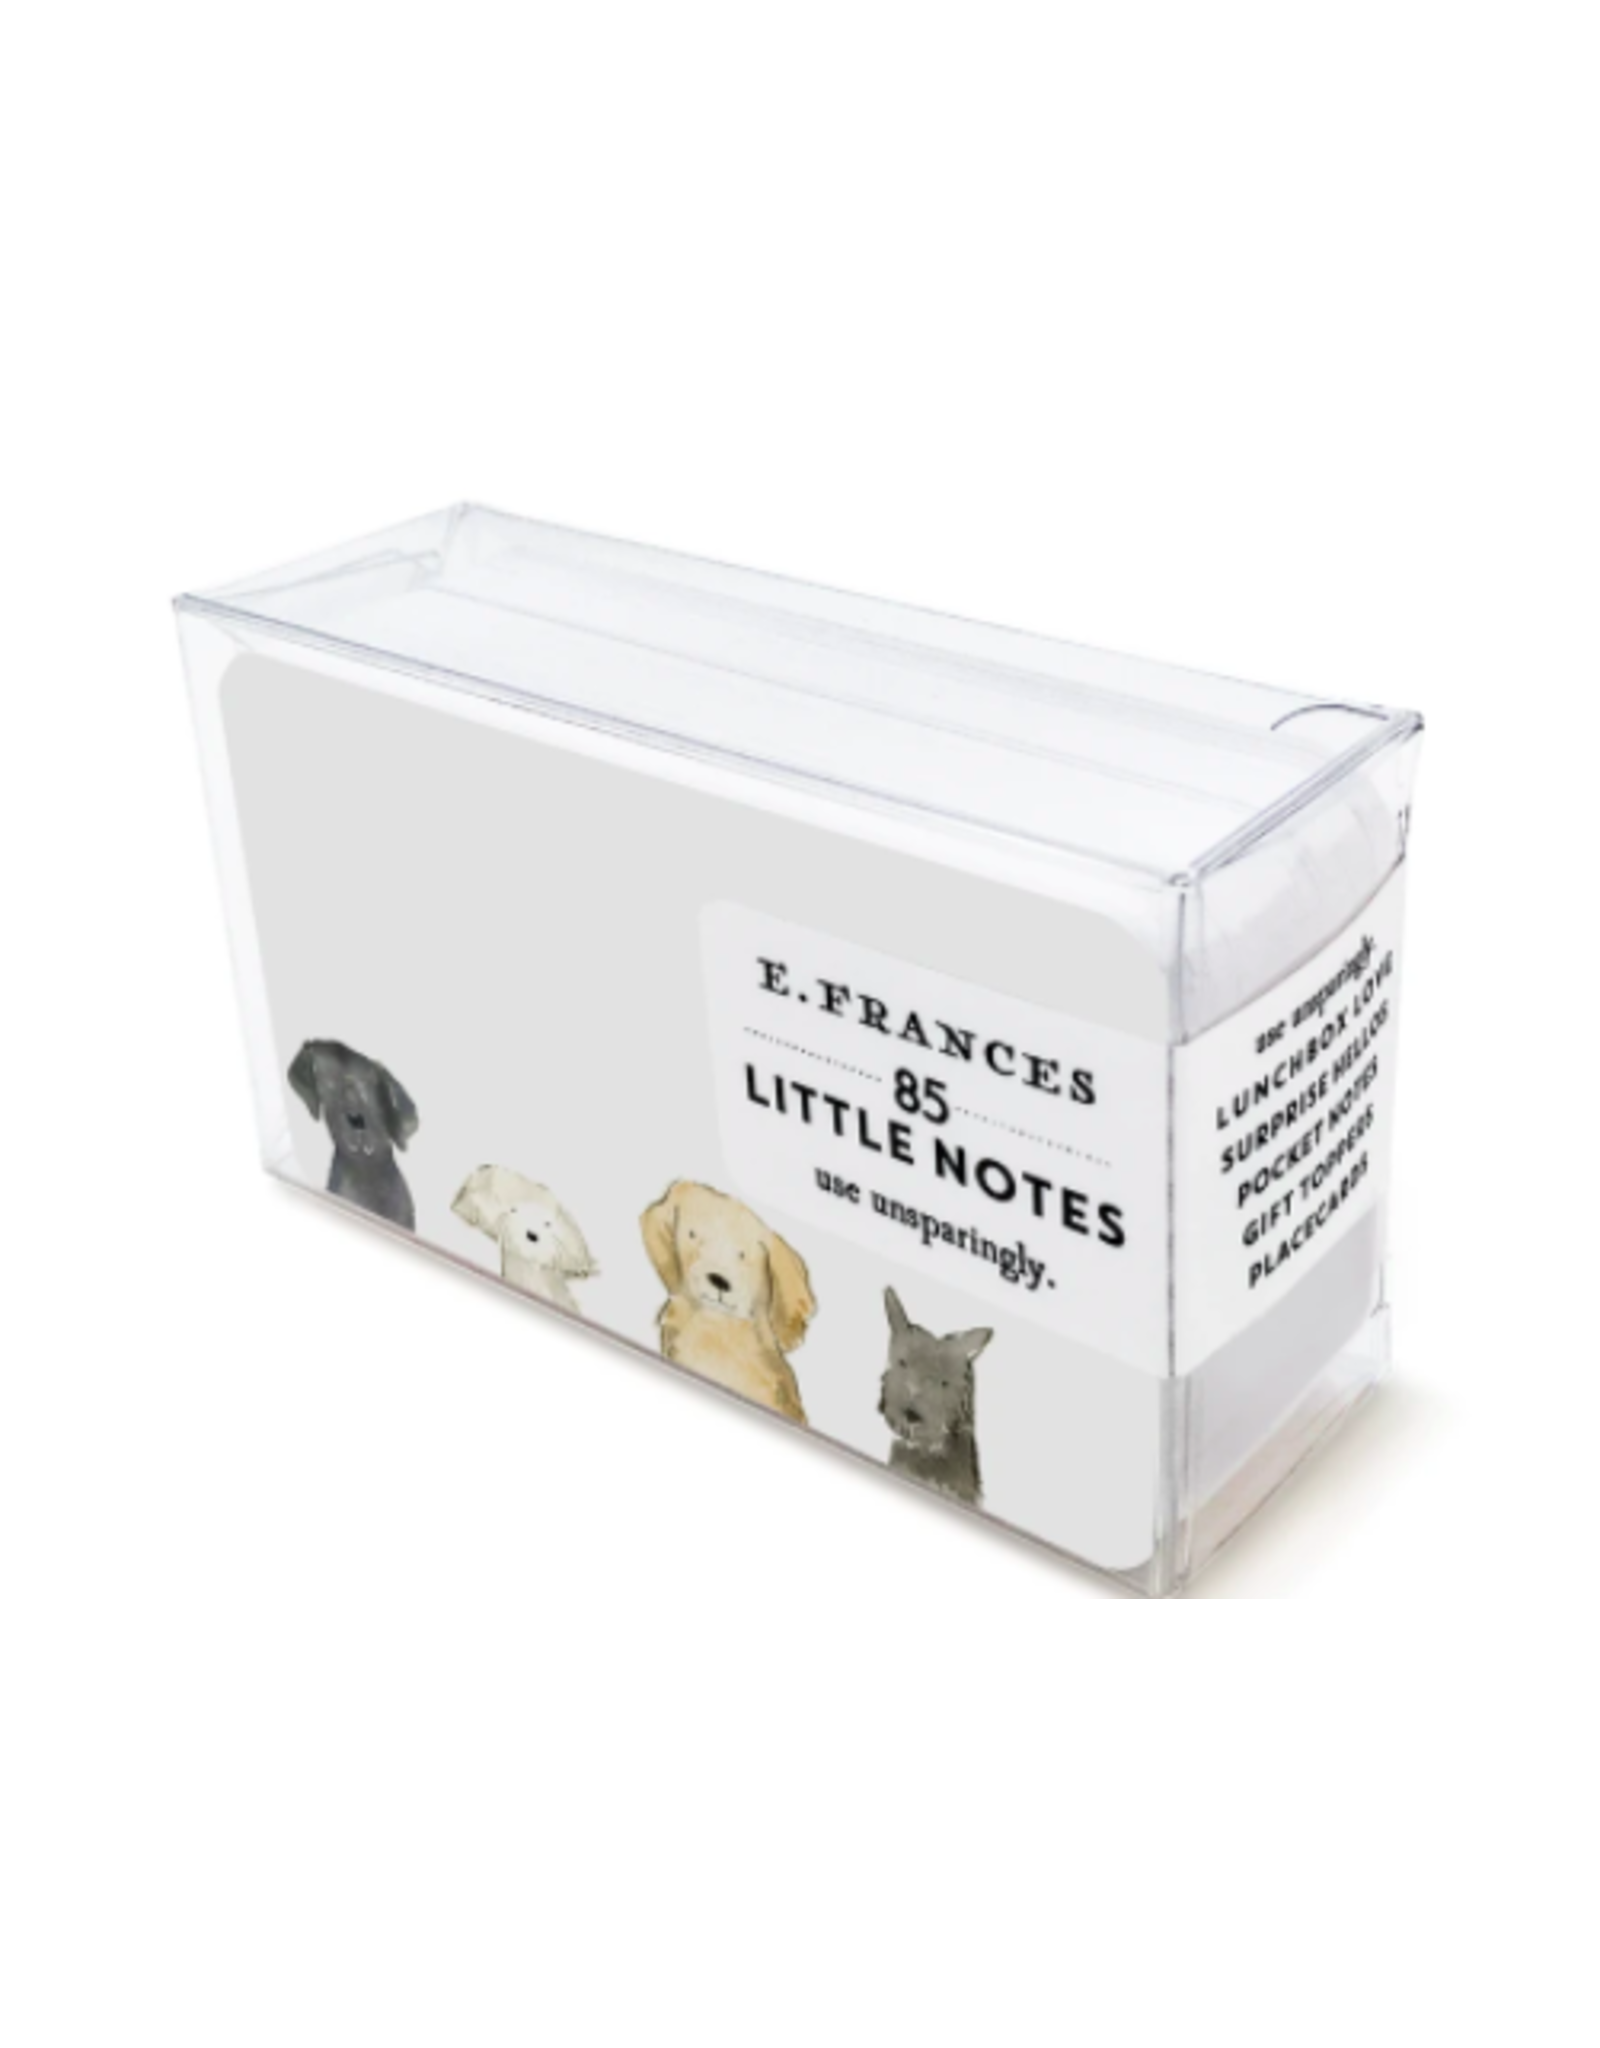 E. Frances Dog Days Little Notes